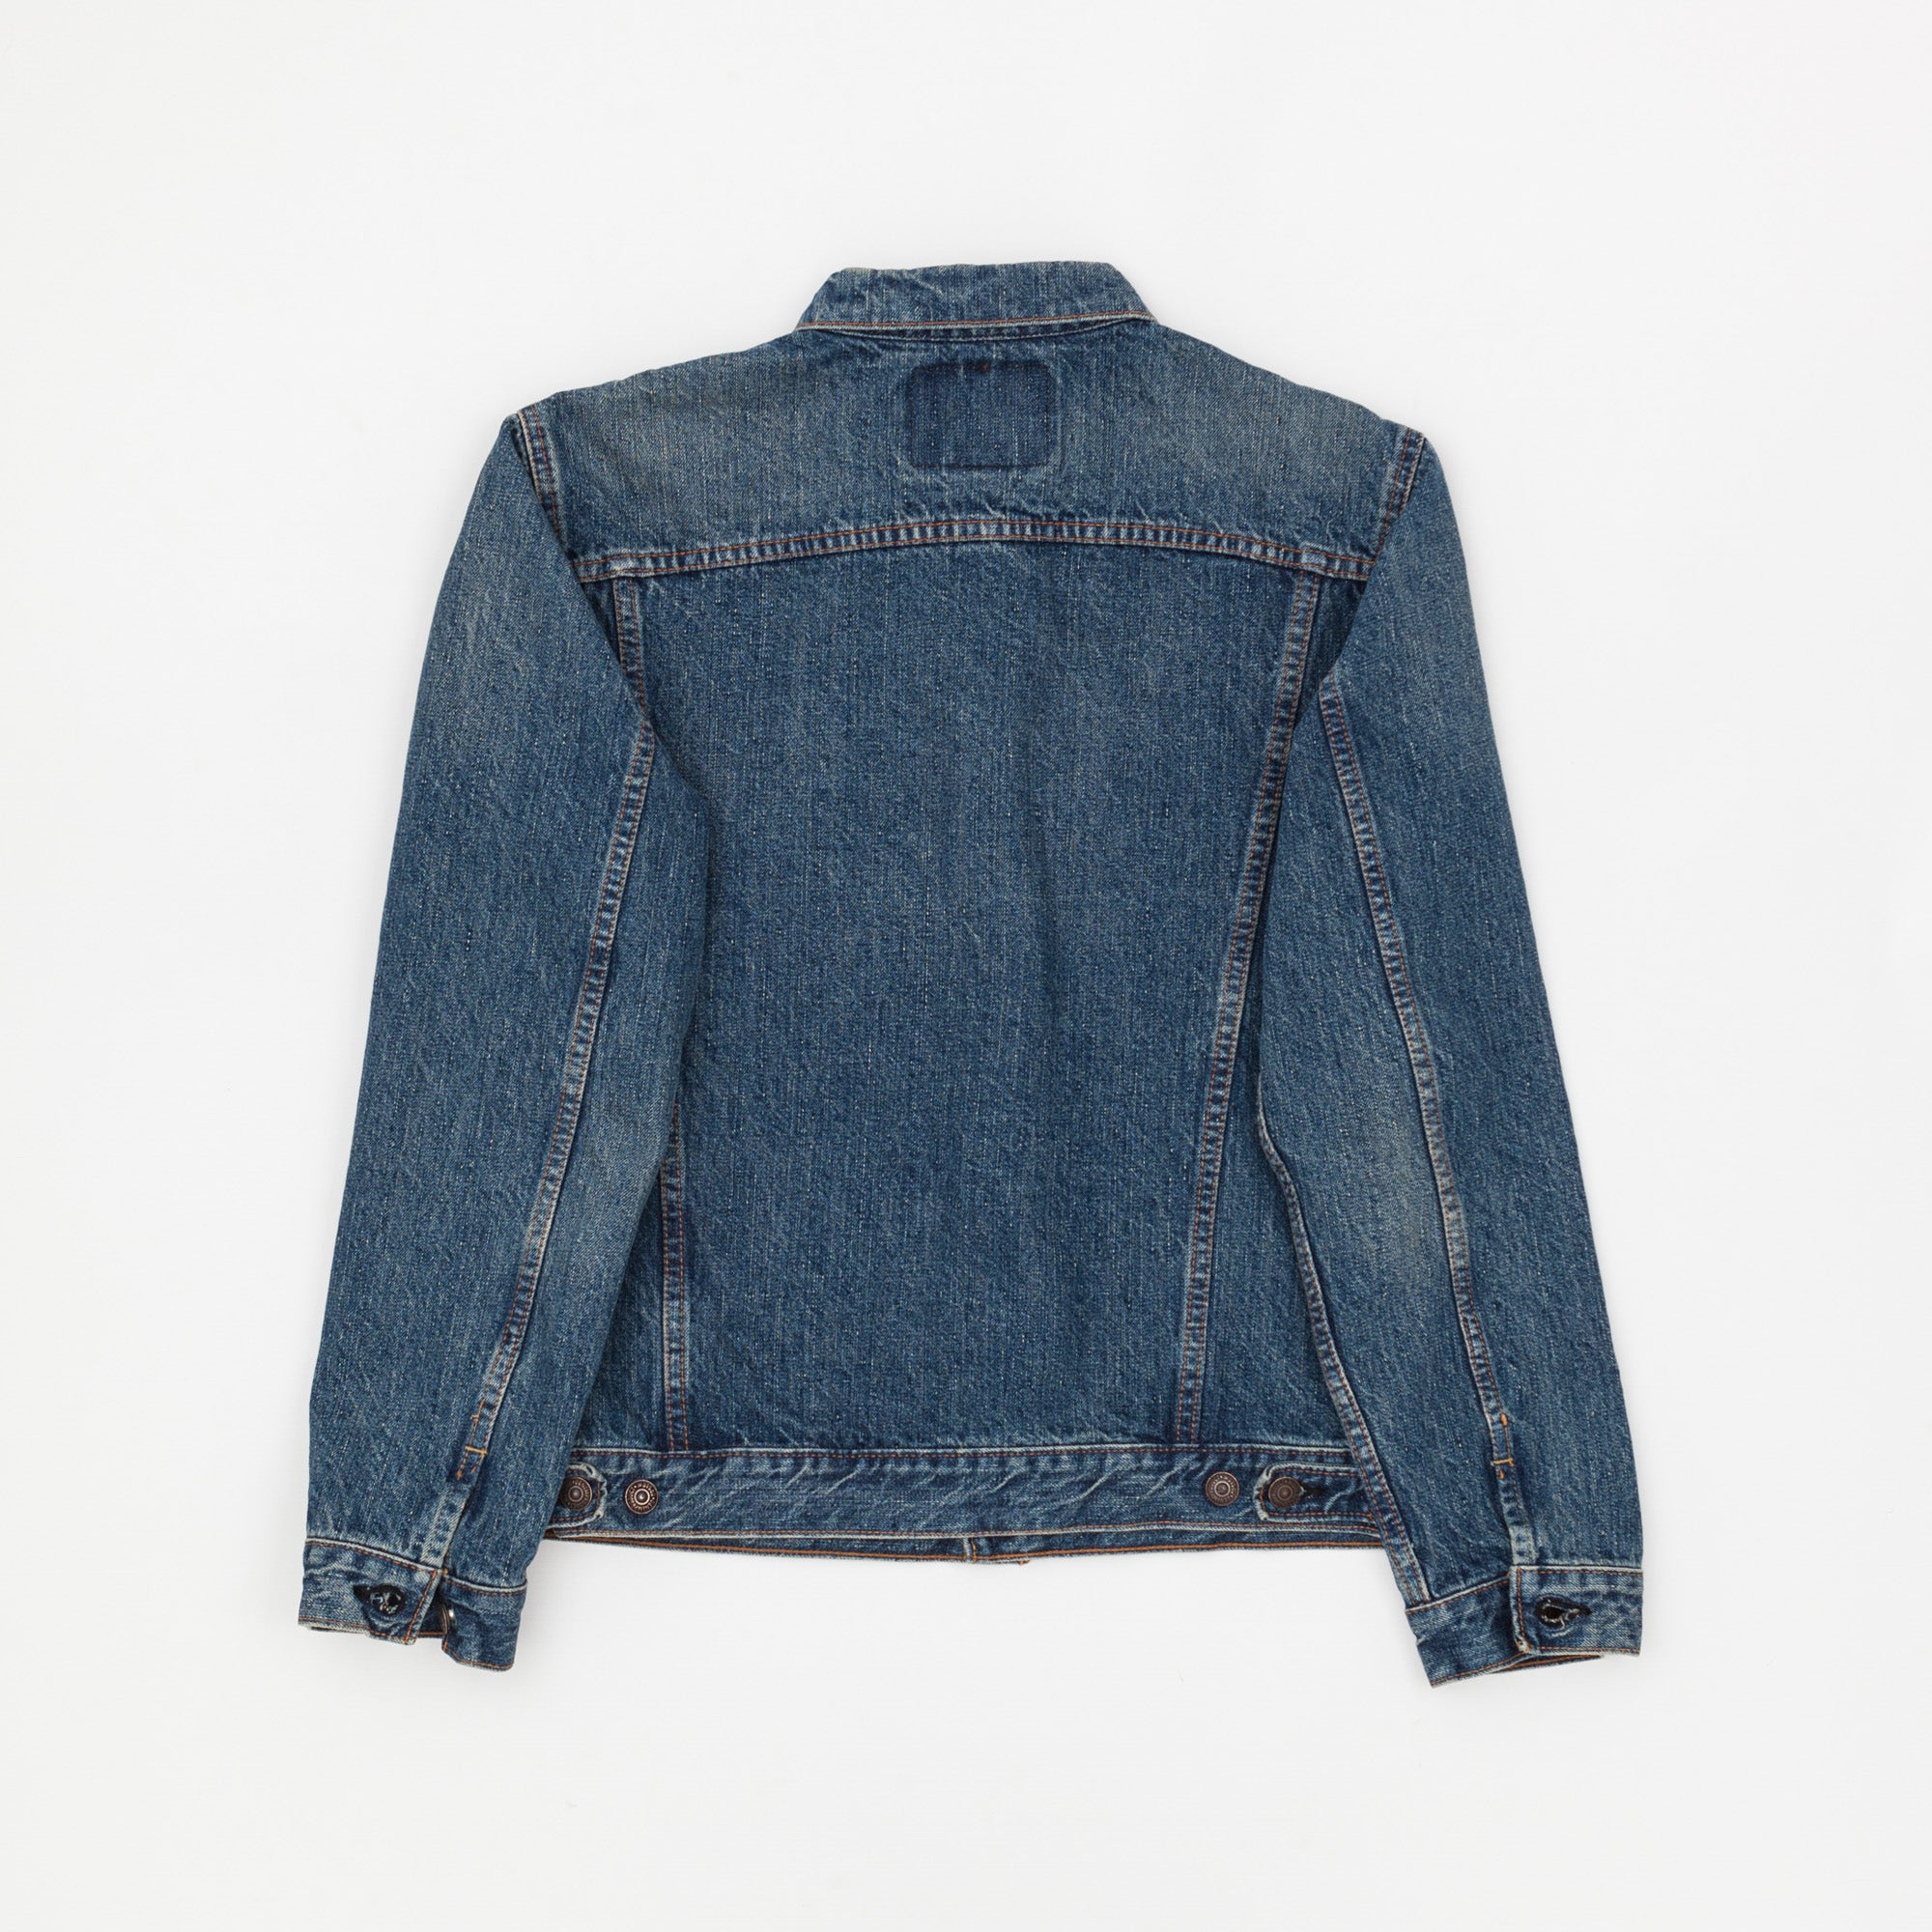 1960s Denim Trucker Jacket